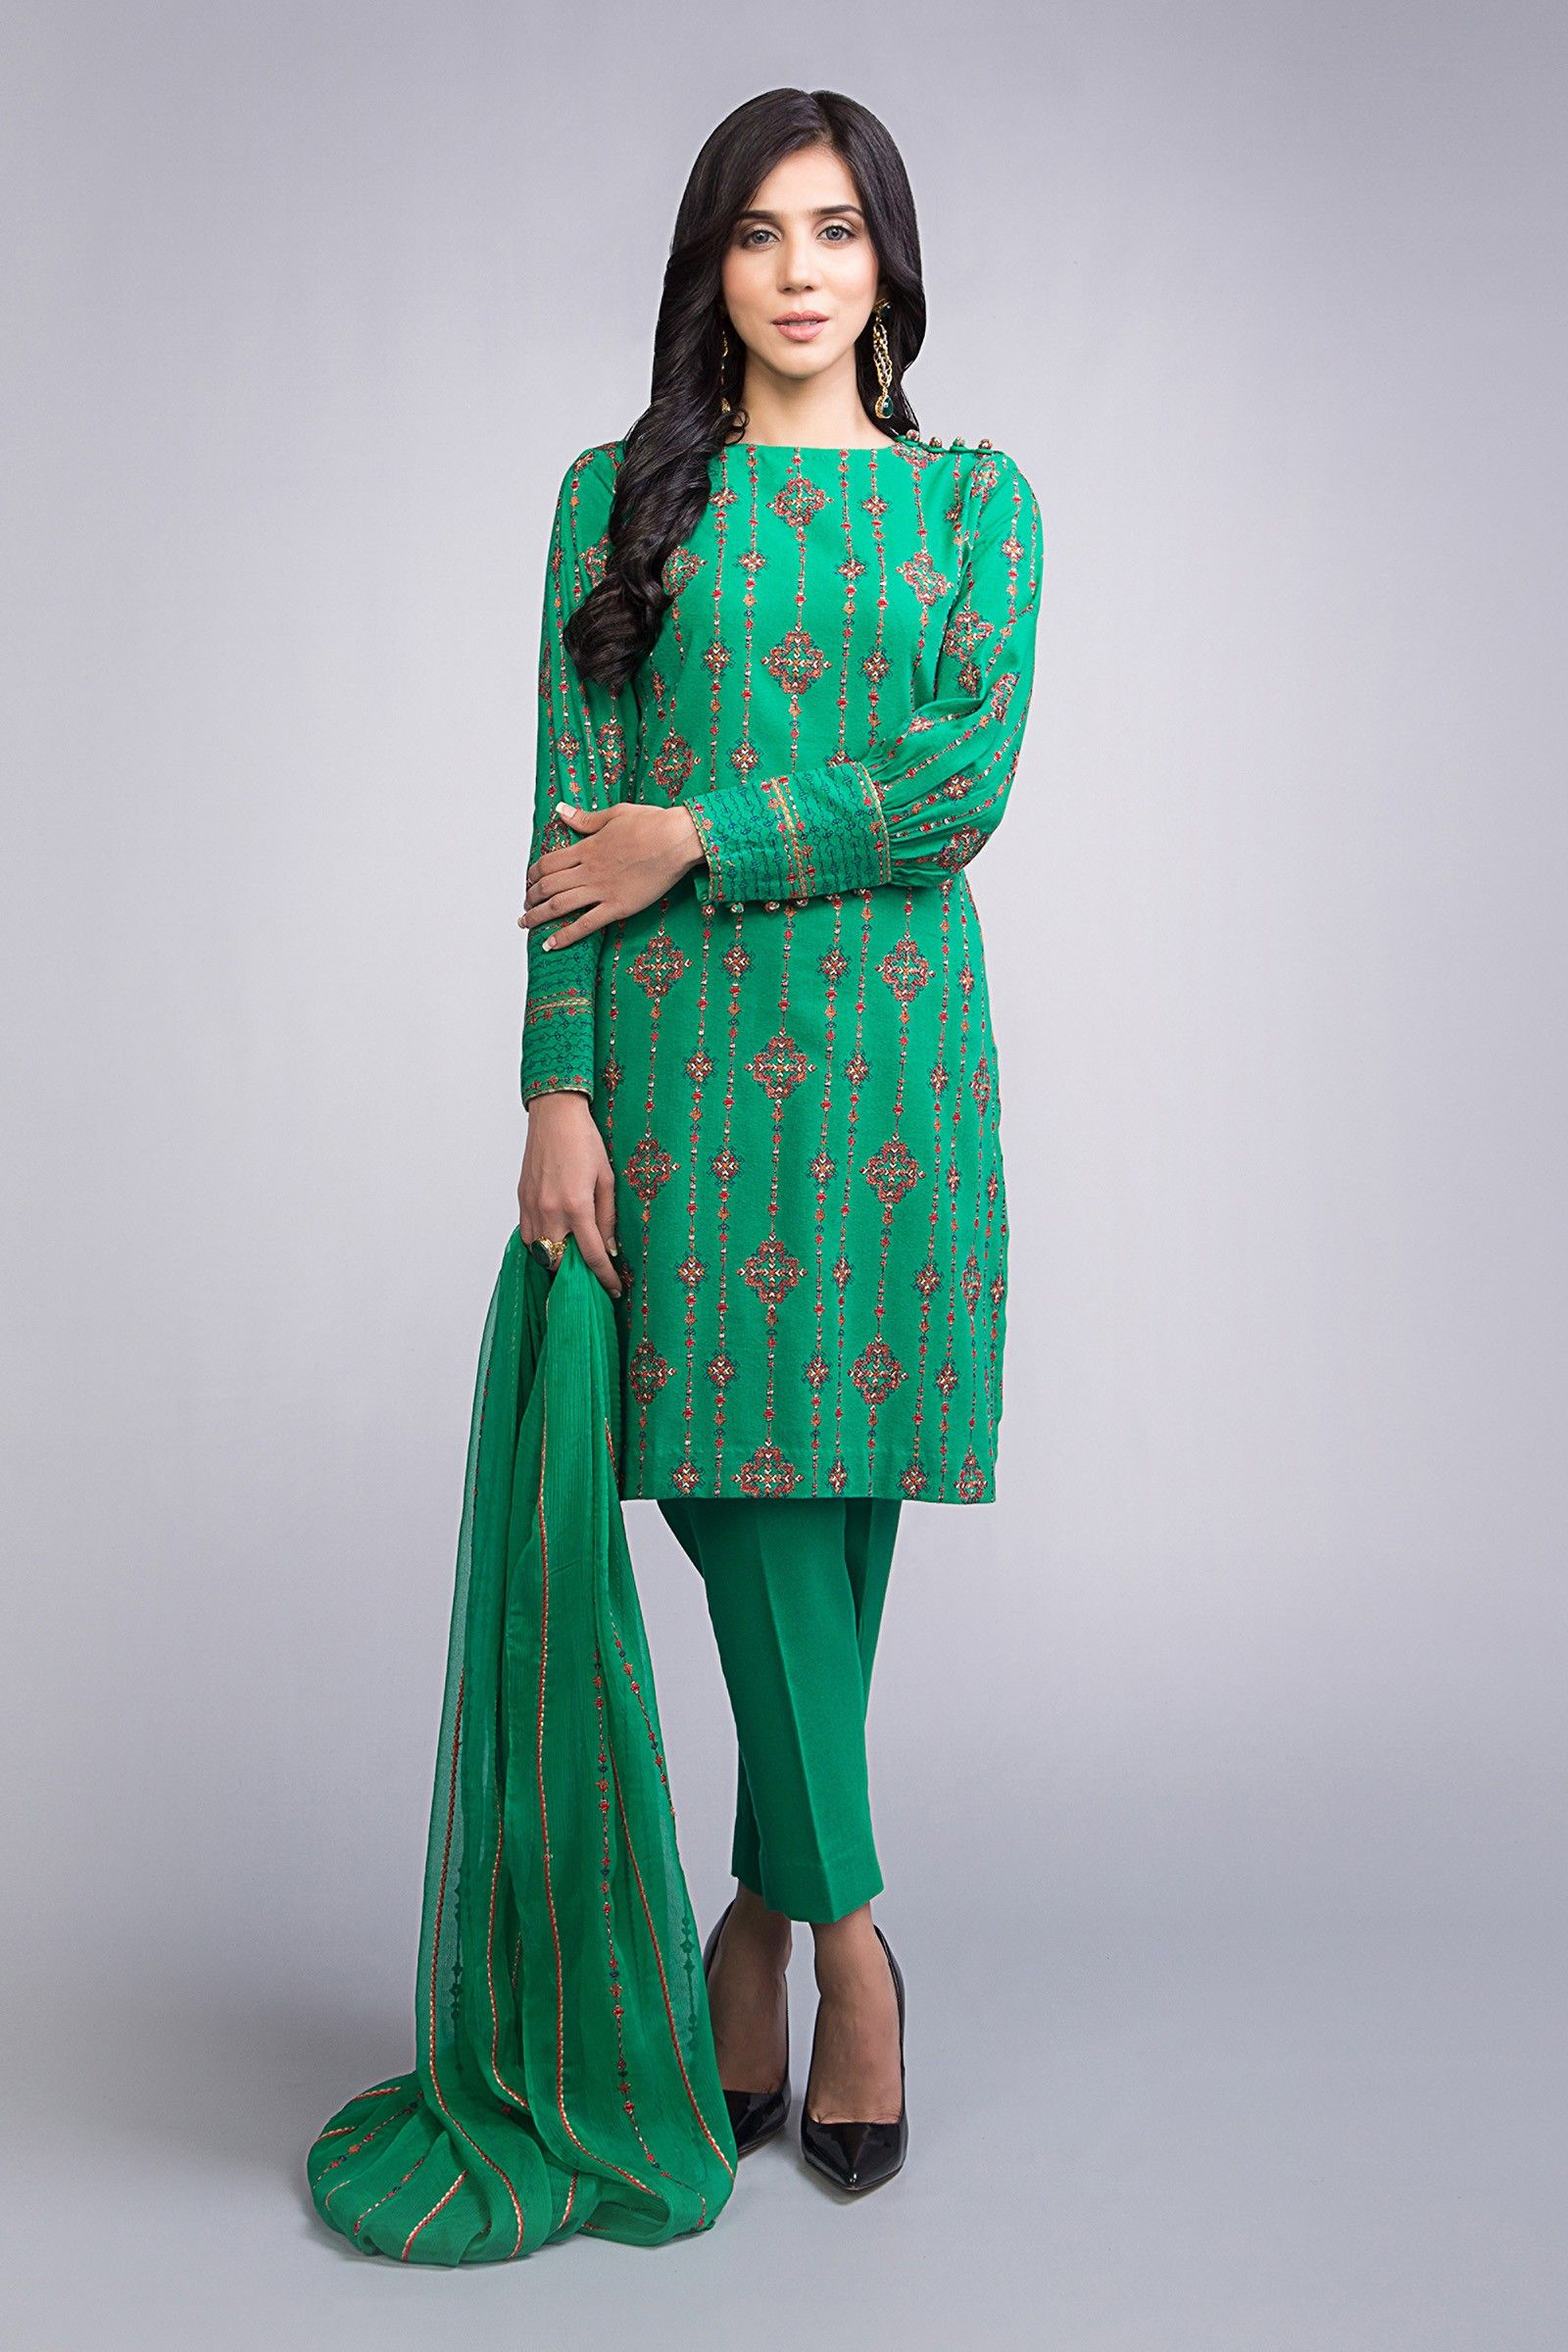 154fd1c0a181 Beautiful embroidered green stitched dress by Bareeze casual collection  2019 springcollection  spring  readytowear  pretwear  unstitched  online   linen ...